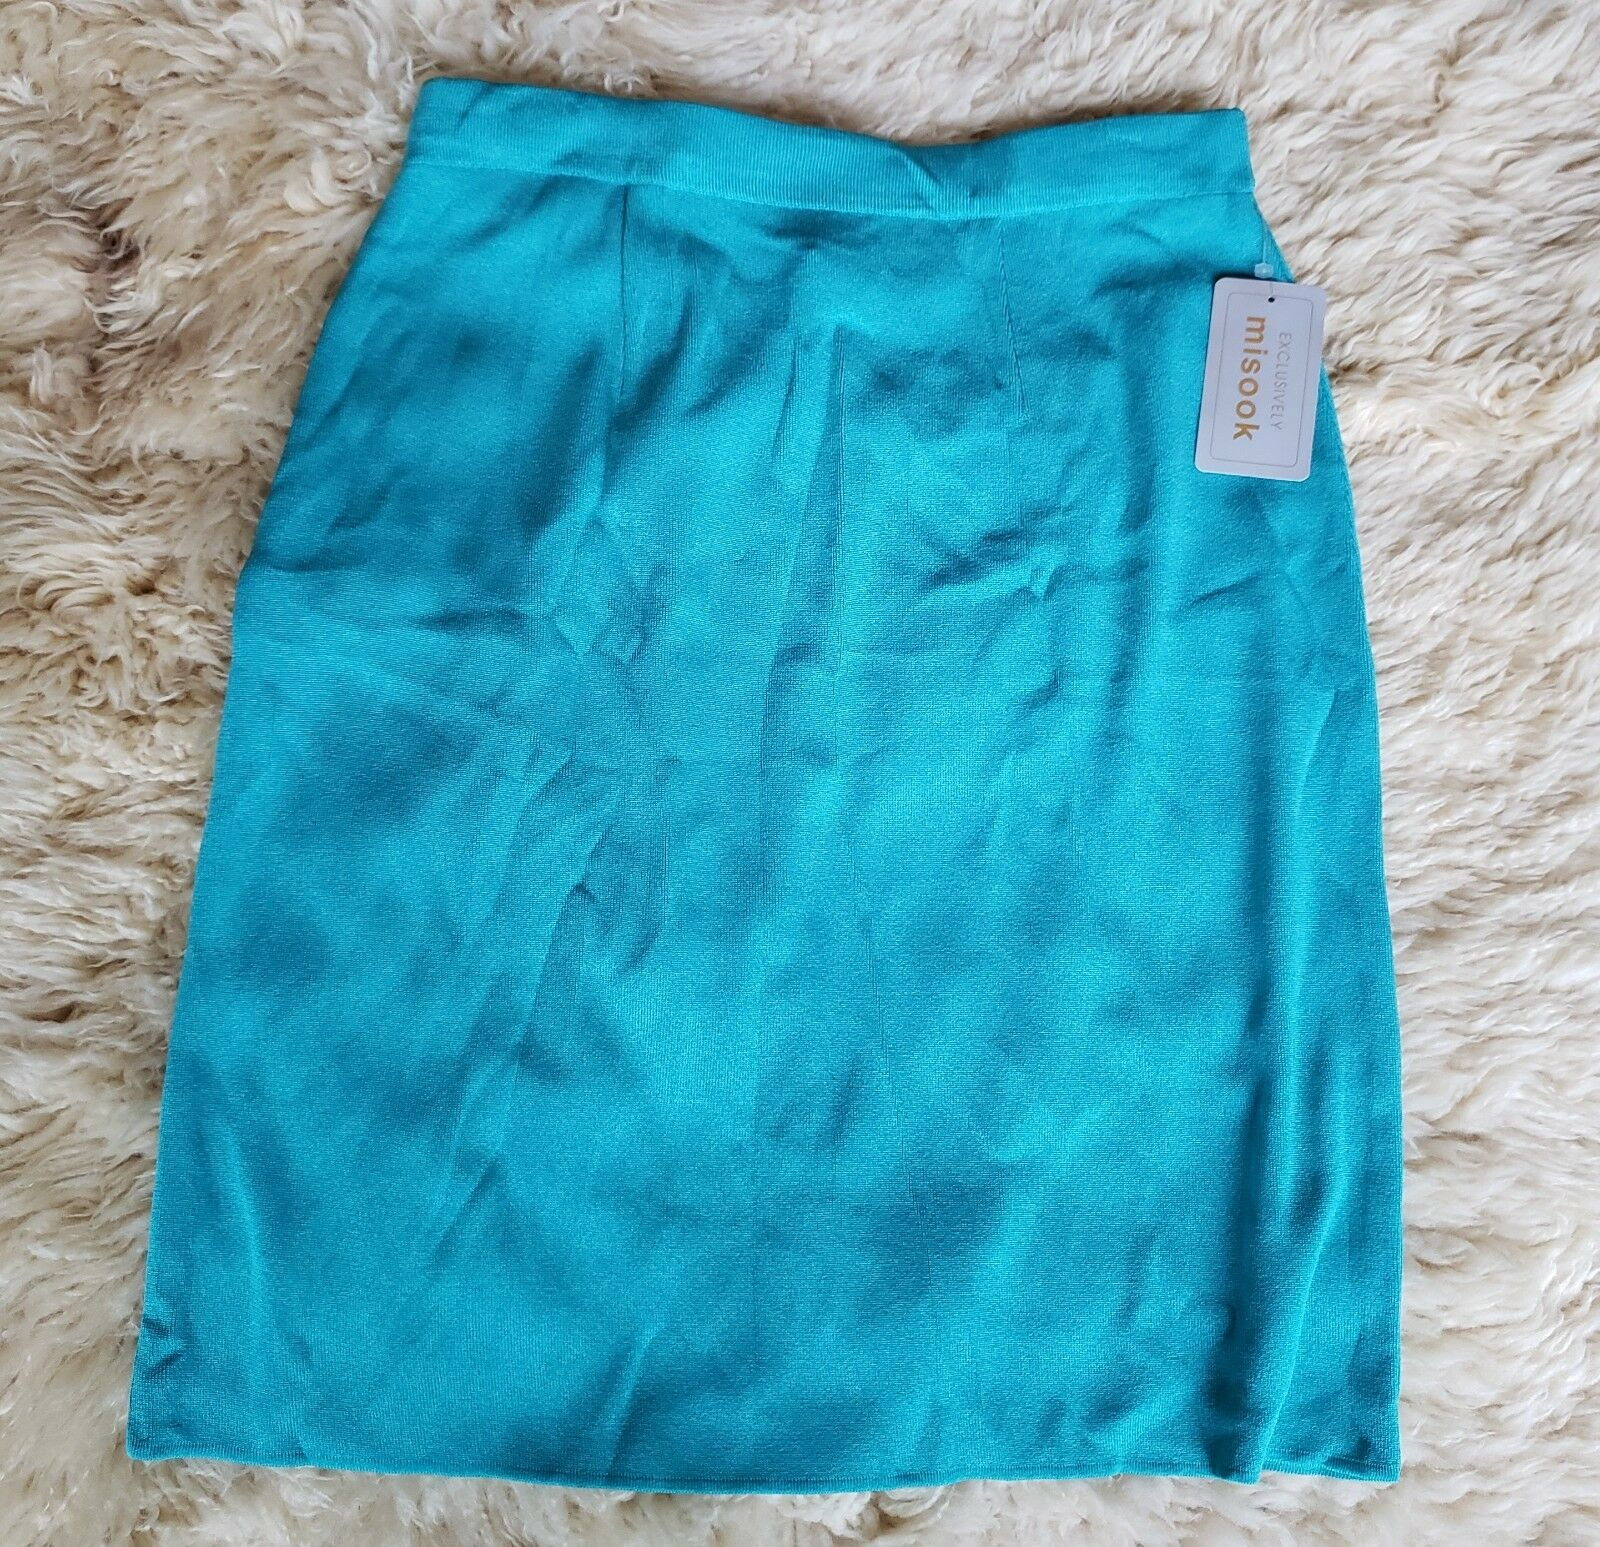 NEW Exclusively Misook Größe L Teal Grün Blau Pencil Skirt Sweater Knit Elastic